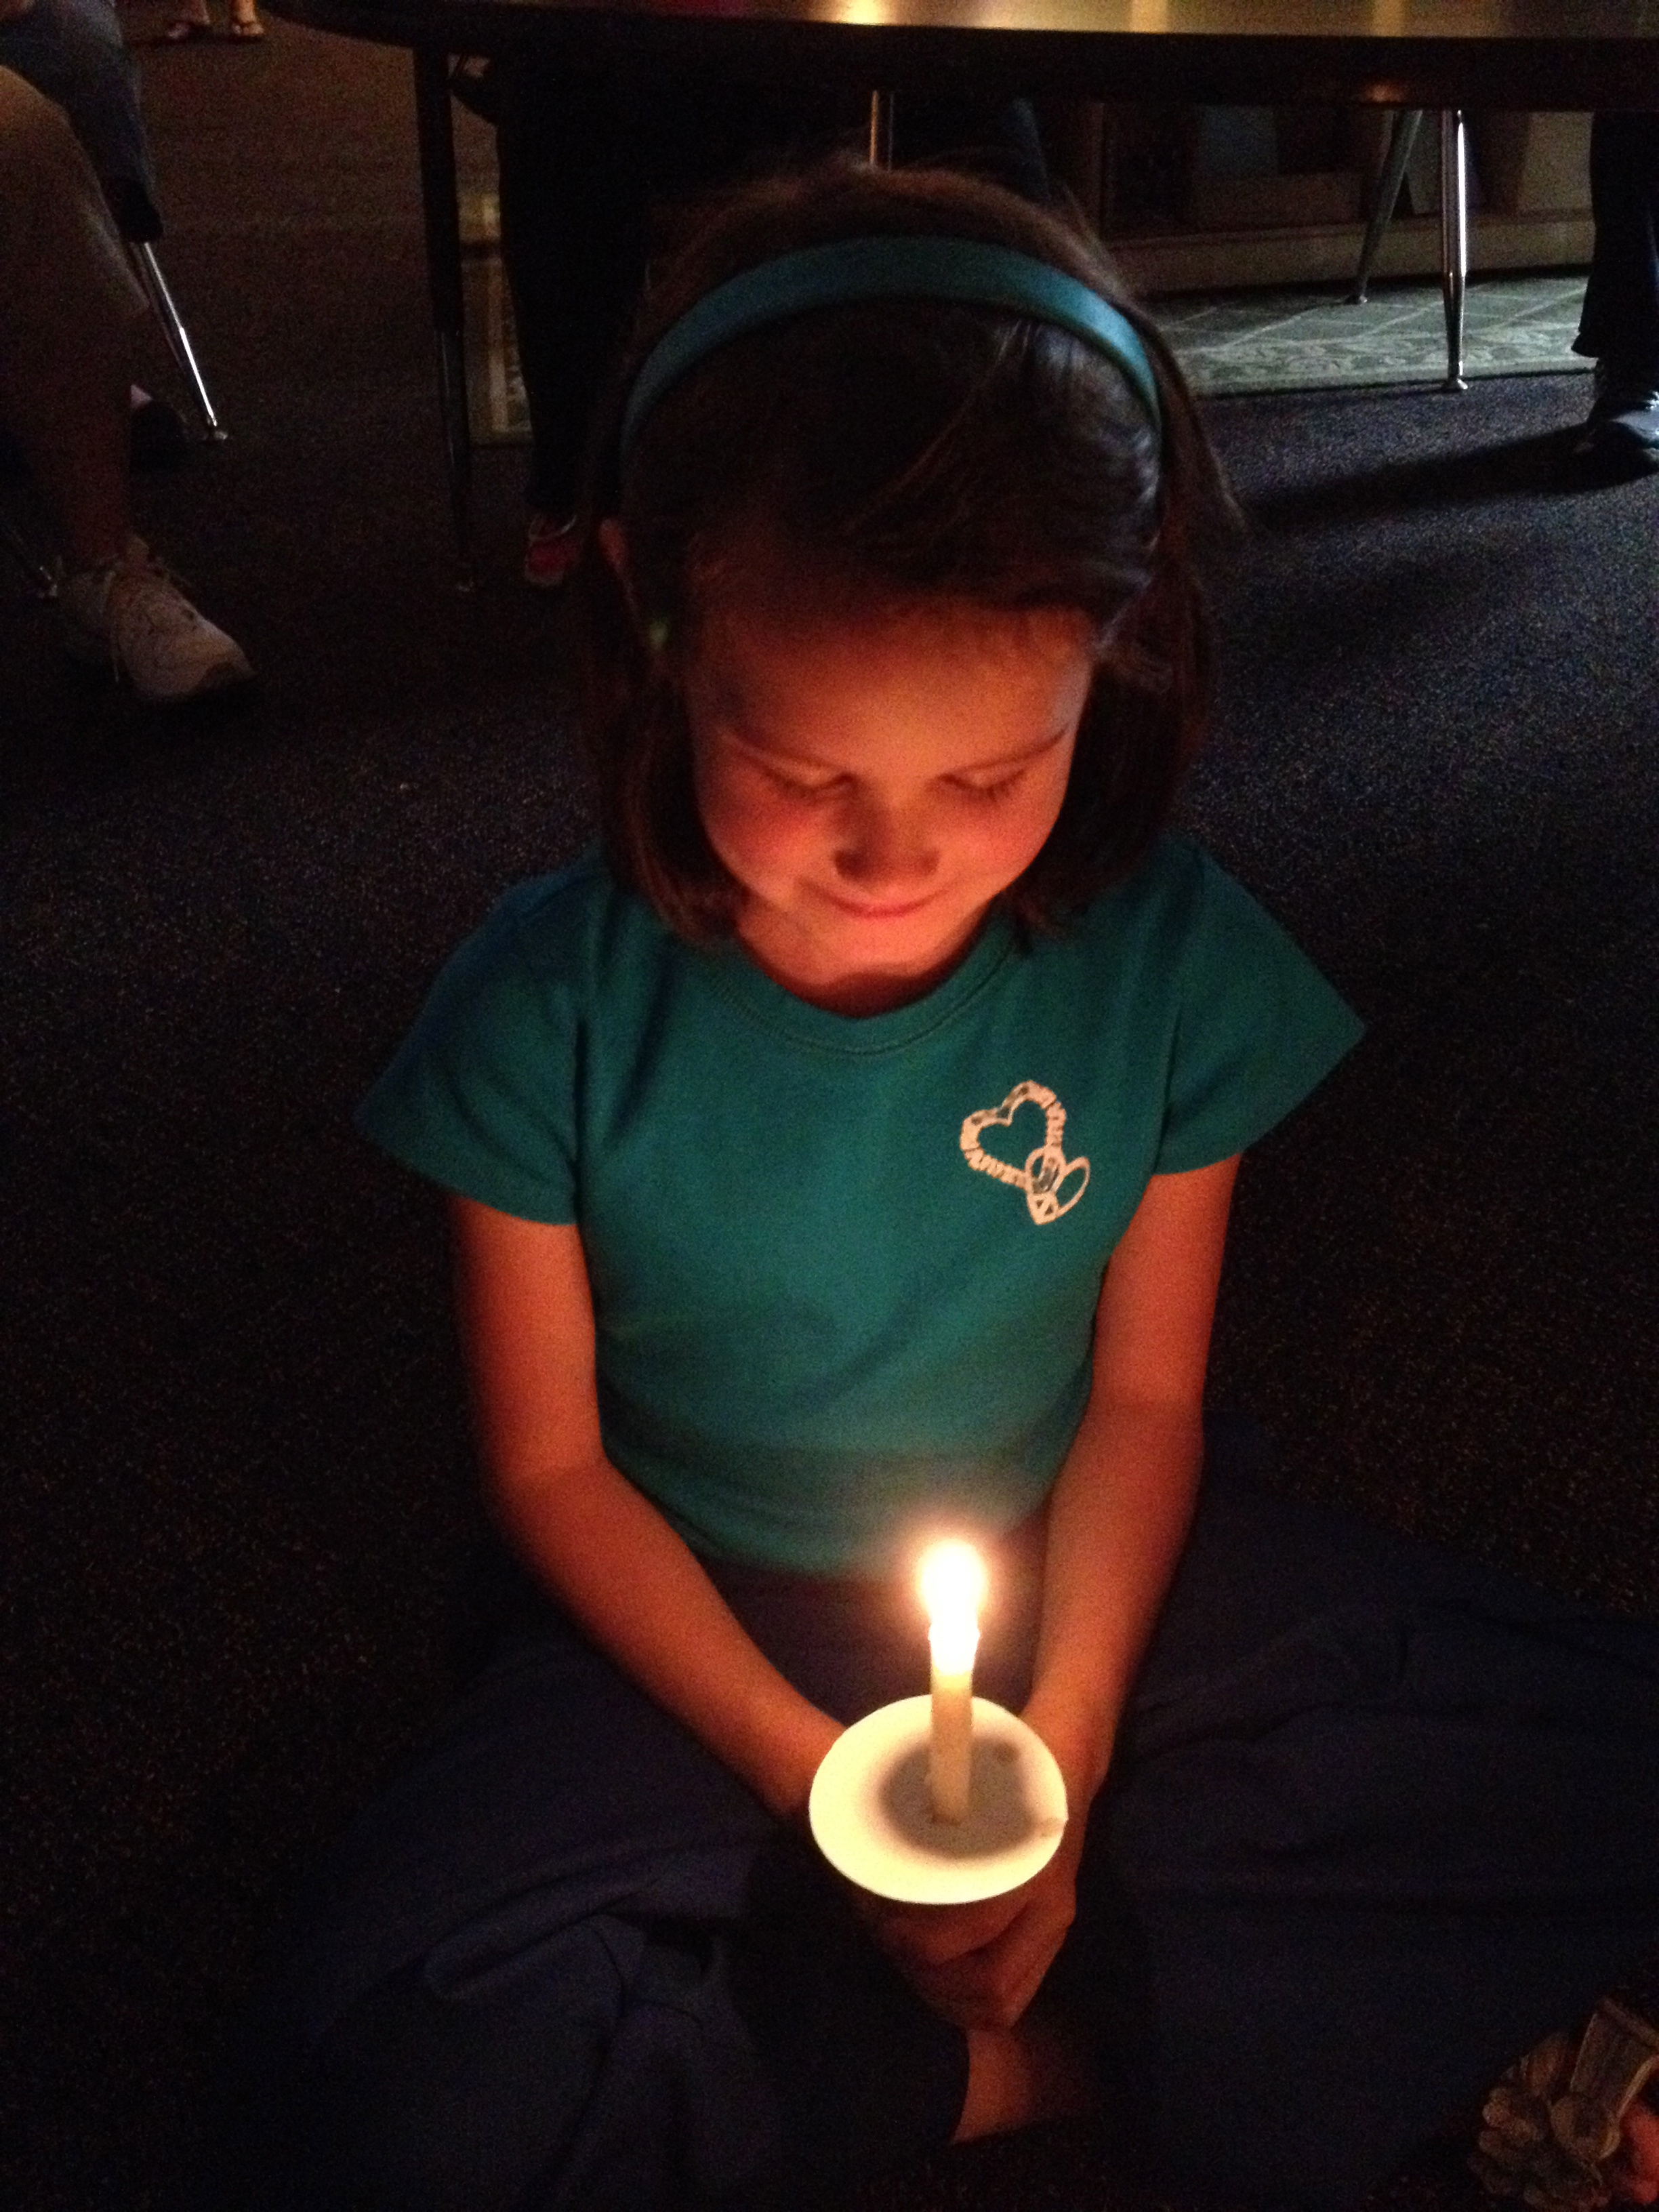 Child in contemplation with candle